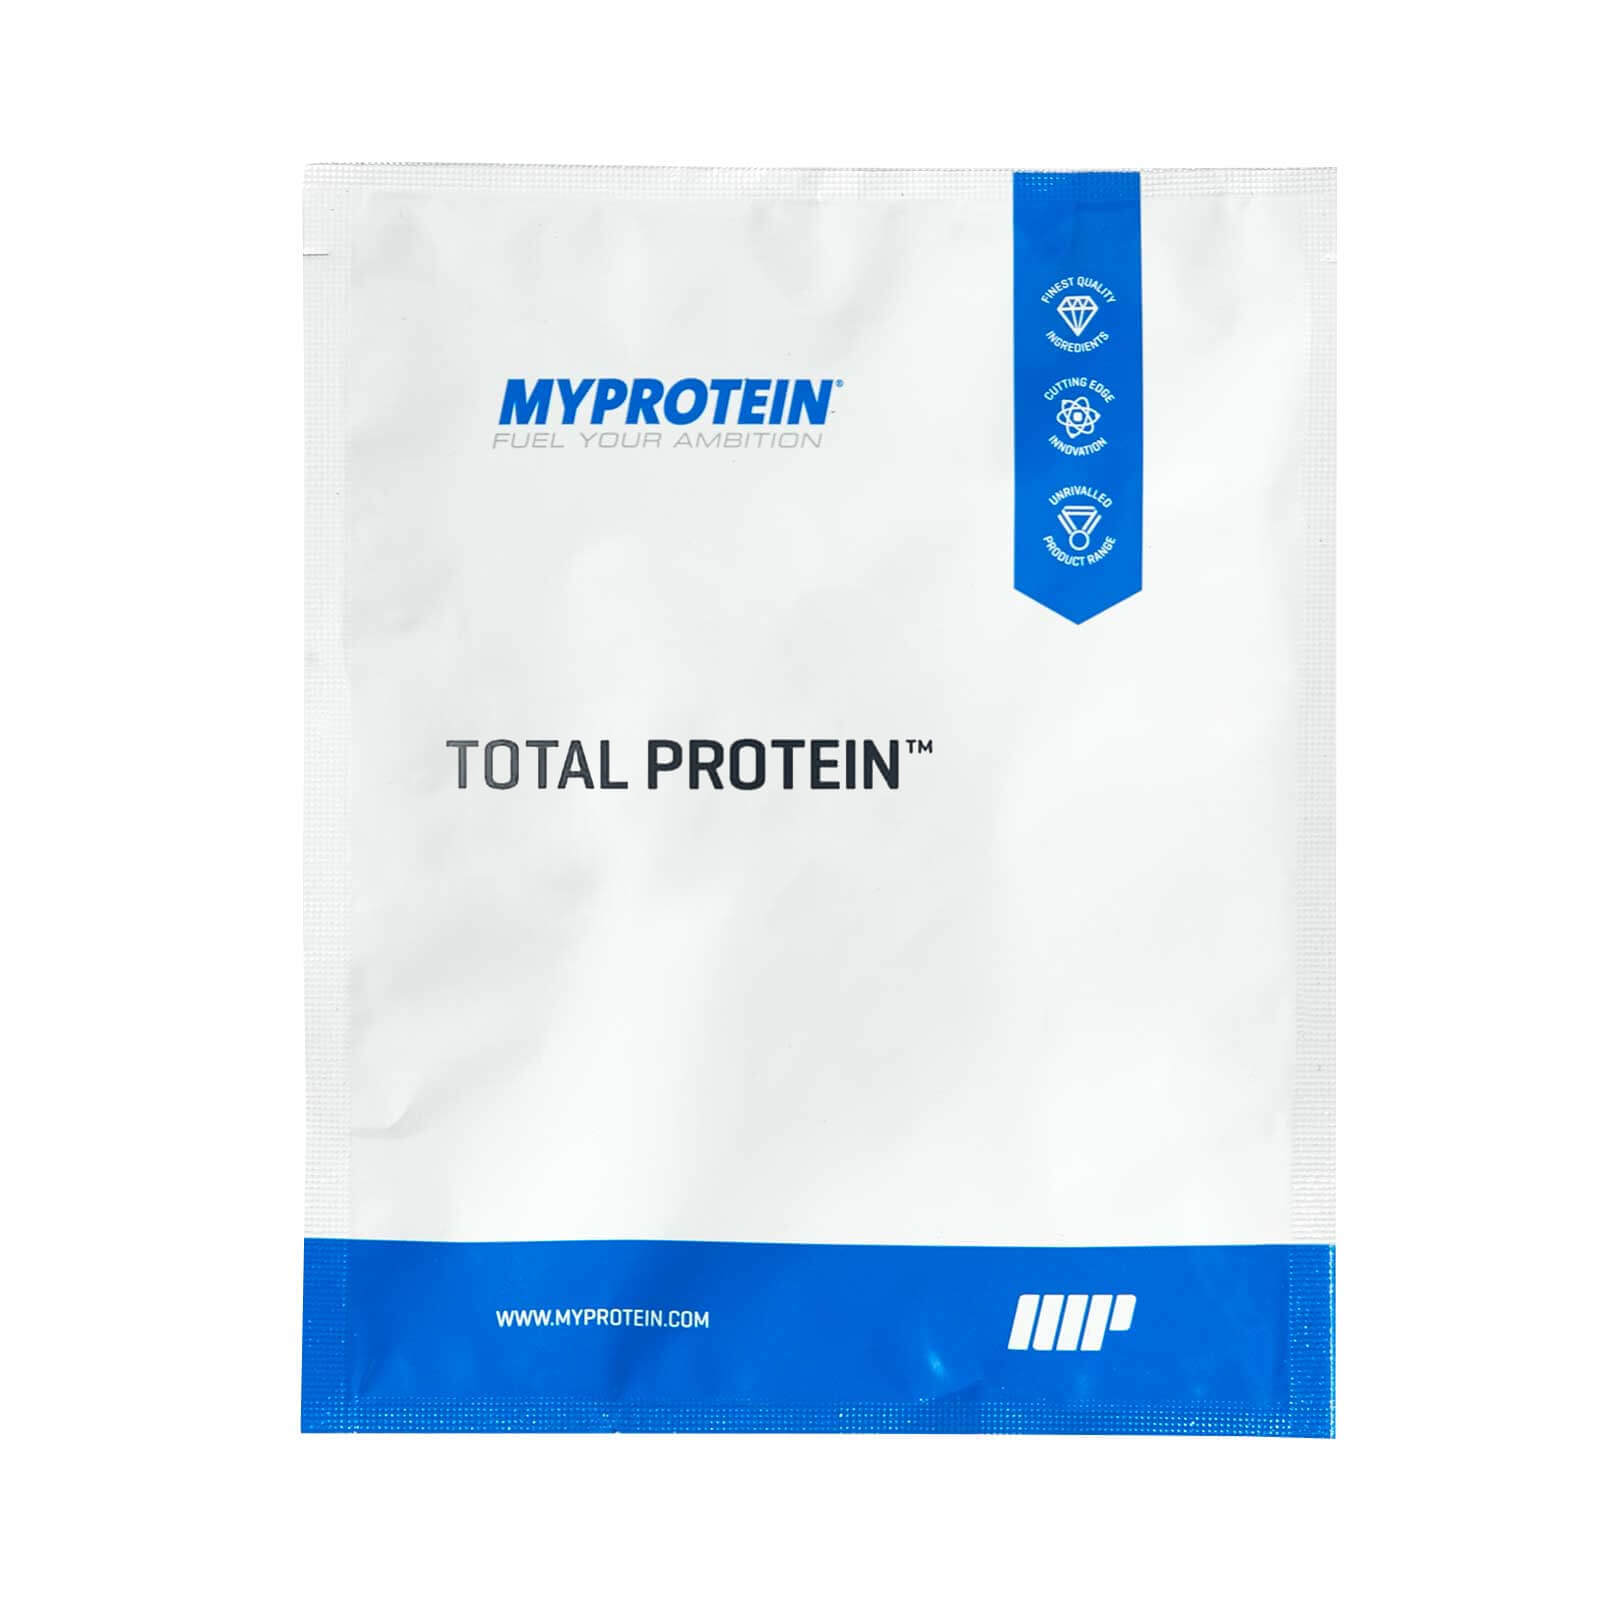 Total Protein (Sample) - Chocolate Smooth, 30g